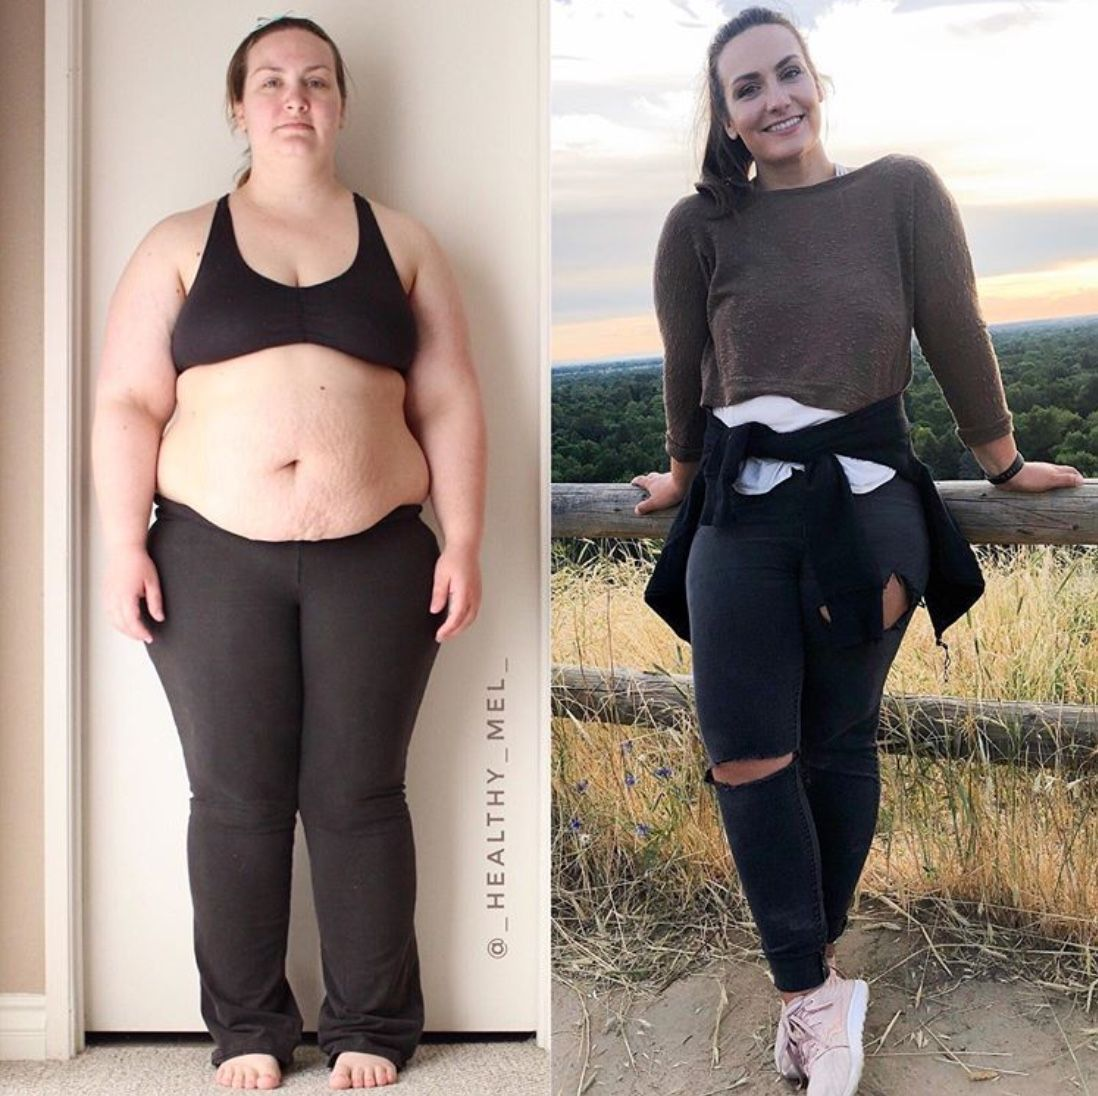 8 Women Share What Keeps Them Going When The Weight Won't Budge